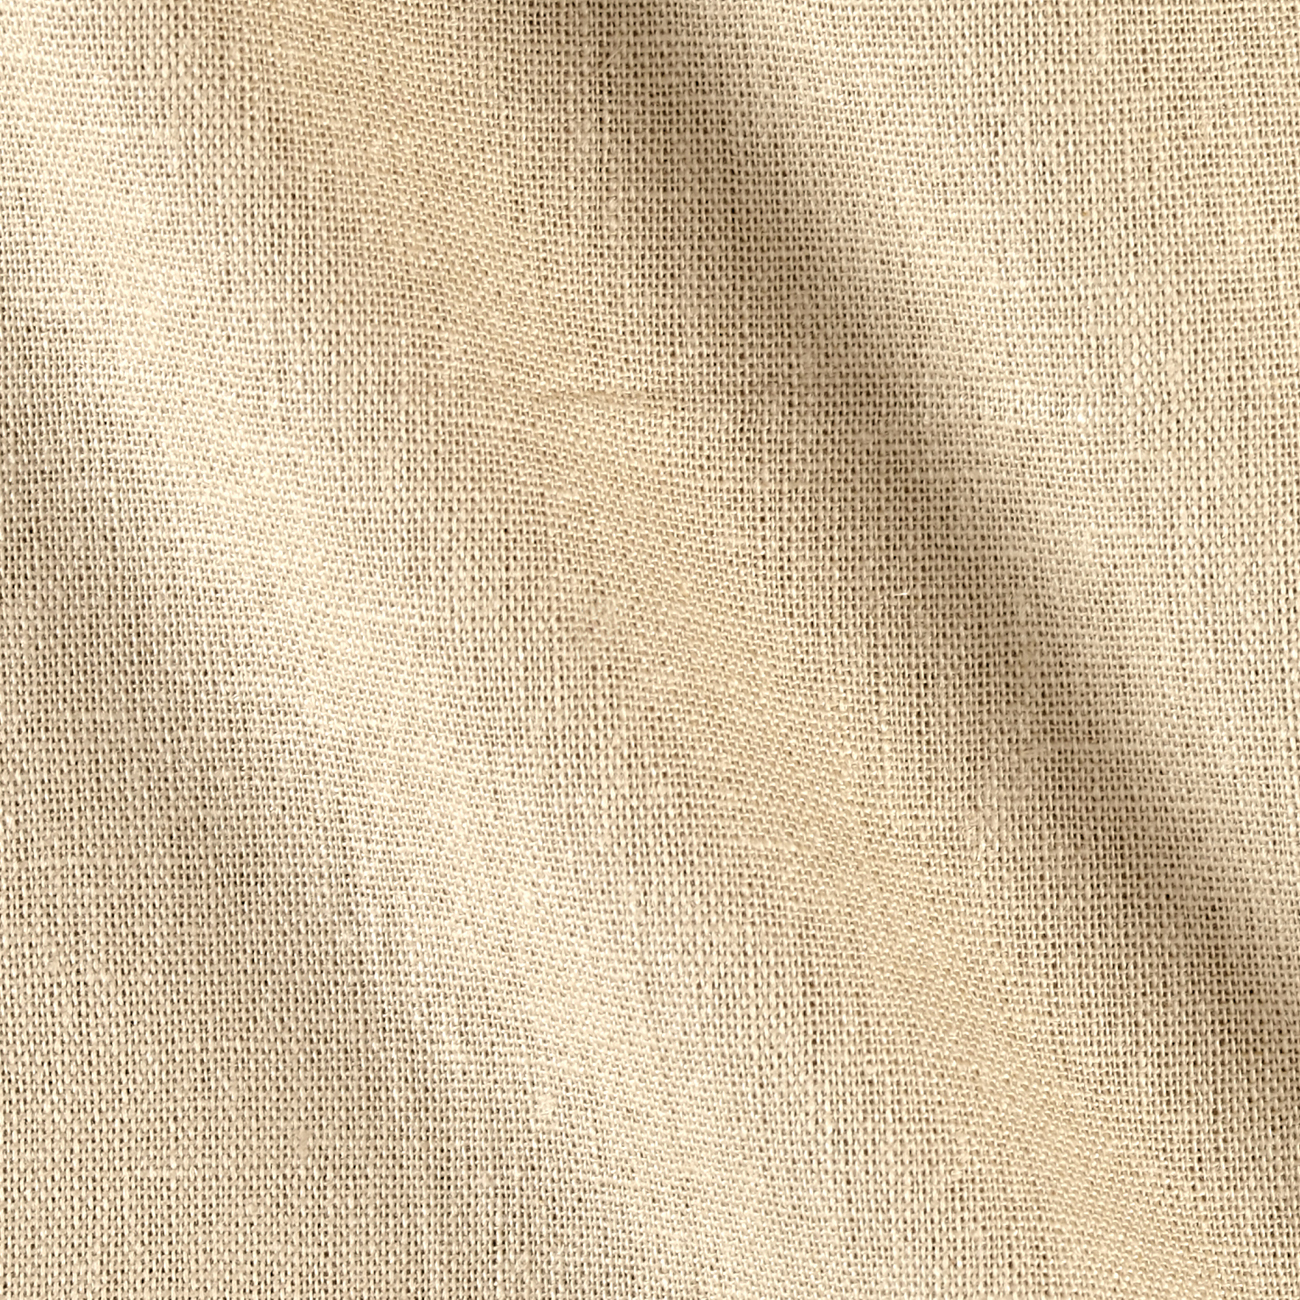 Rayon Linen Blend Stone Fabric by Ben in USA